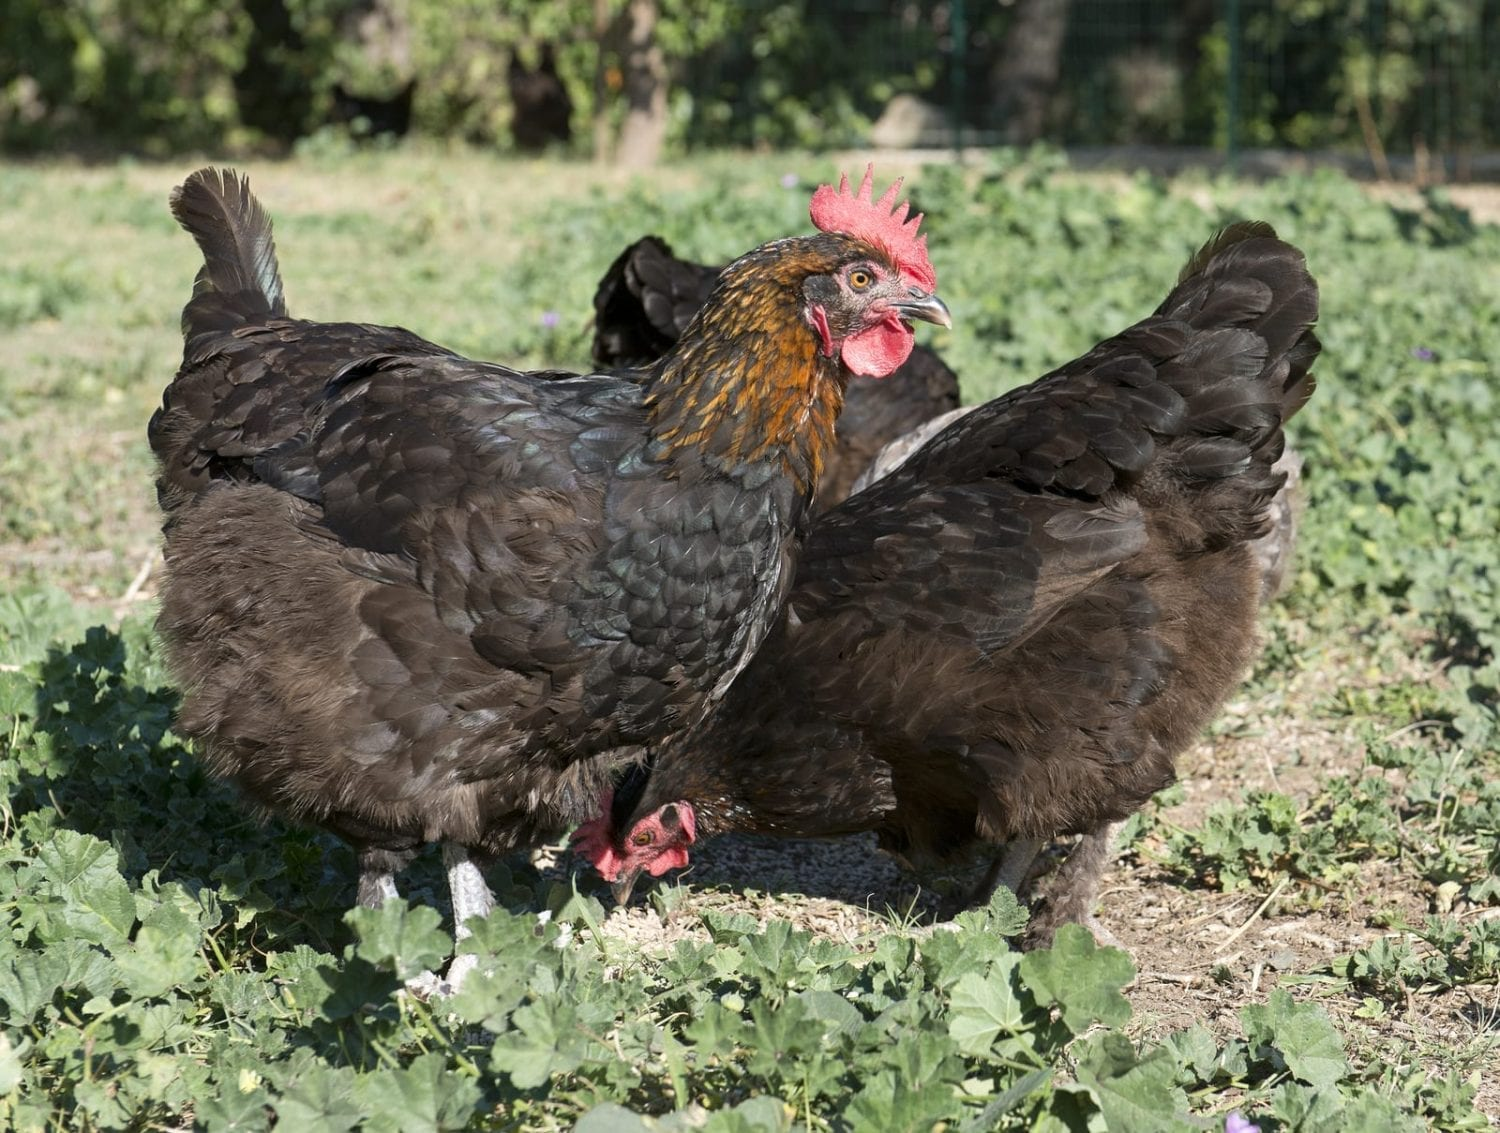 How Much Does it Cost to Keep Chickens?